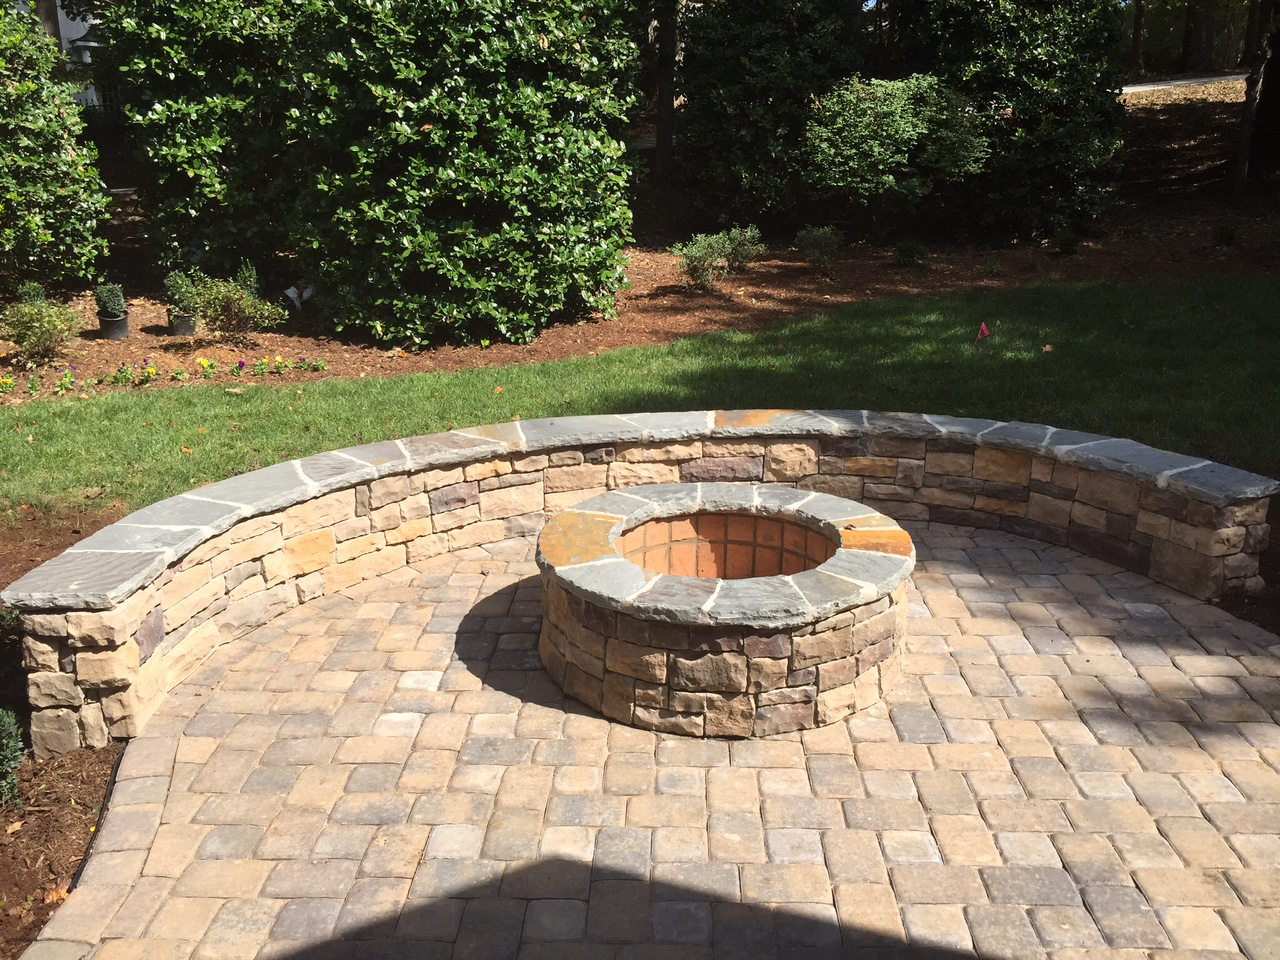 Charlotte outdoor fire pits, Charlotte outdoor fireplace ... on Pavers Patio With Fire Pit id=50638